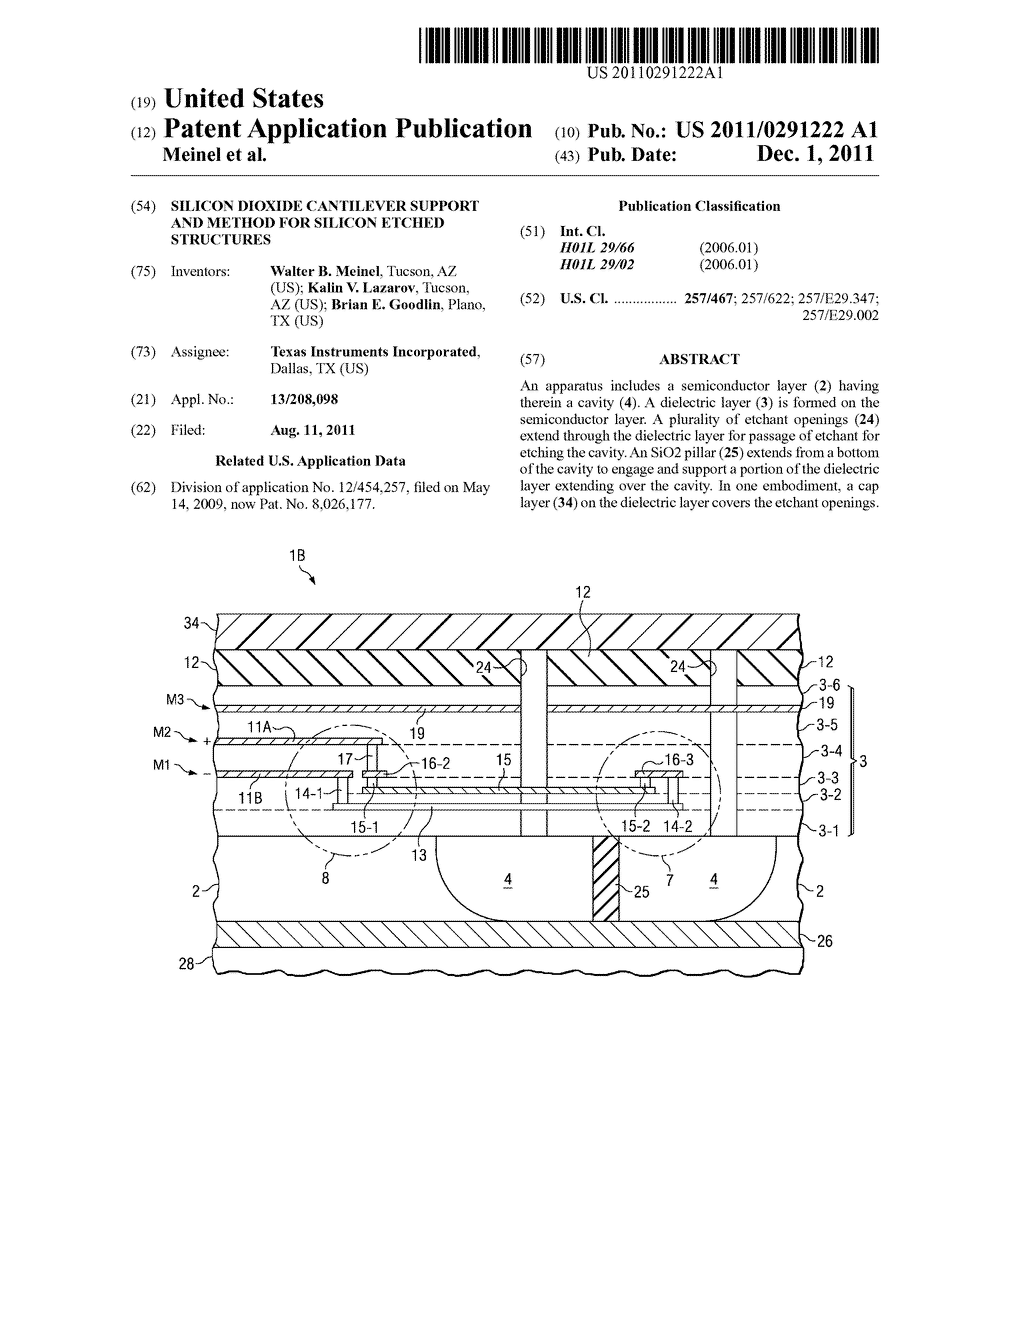 SILICON DIOXIDE CANTILEVER SUPPORT AND METHOD FOR SILICON ETCHED     STRUCTURES - diagram, schematic, and image 01